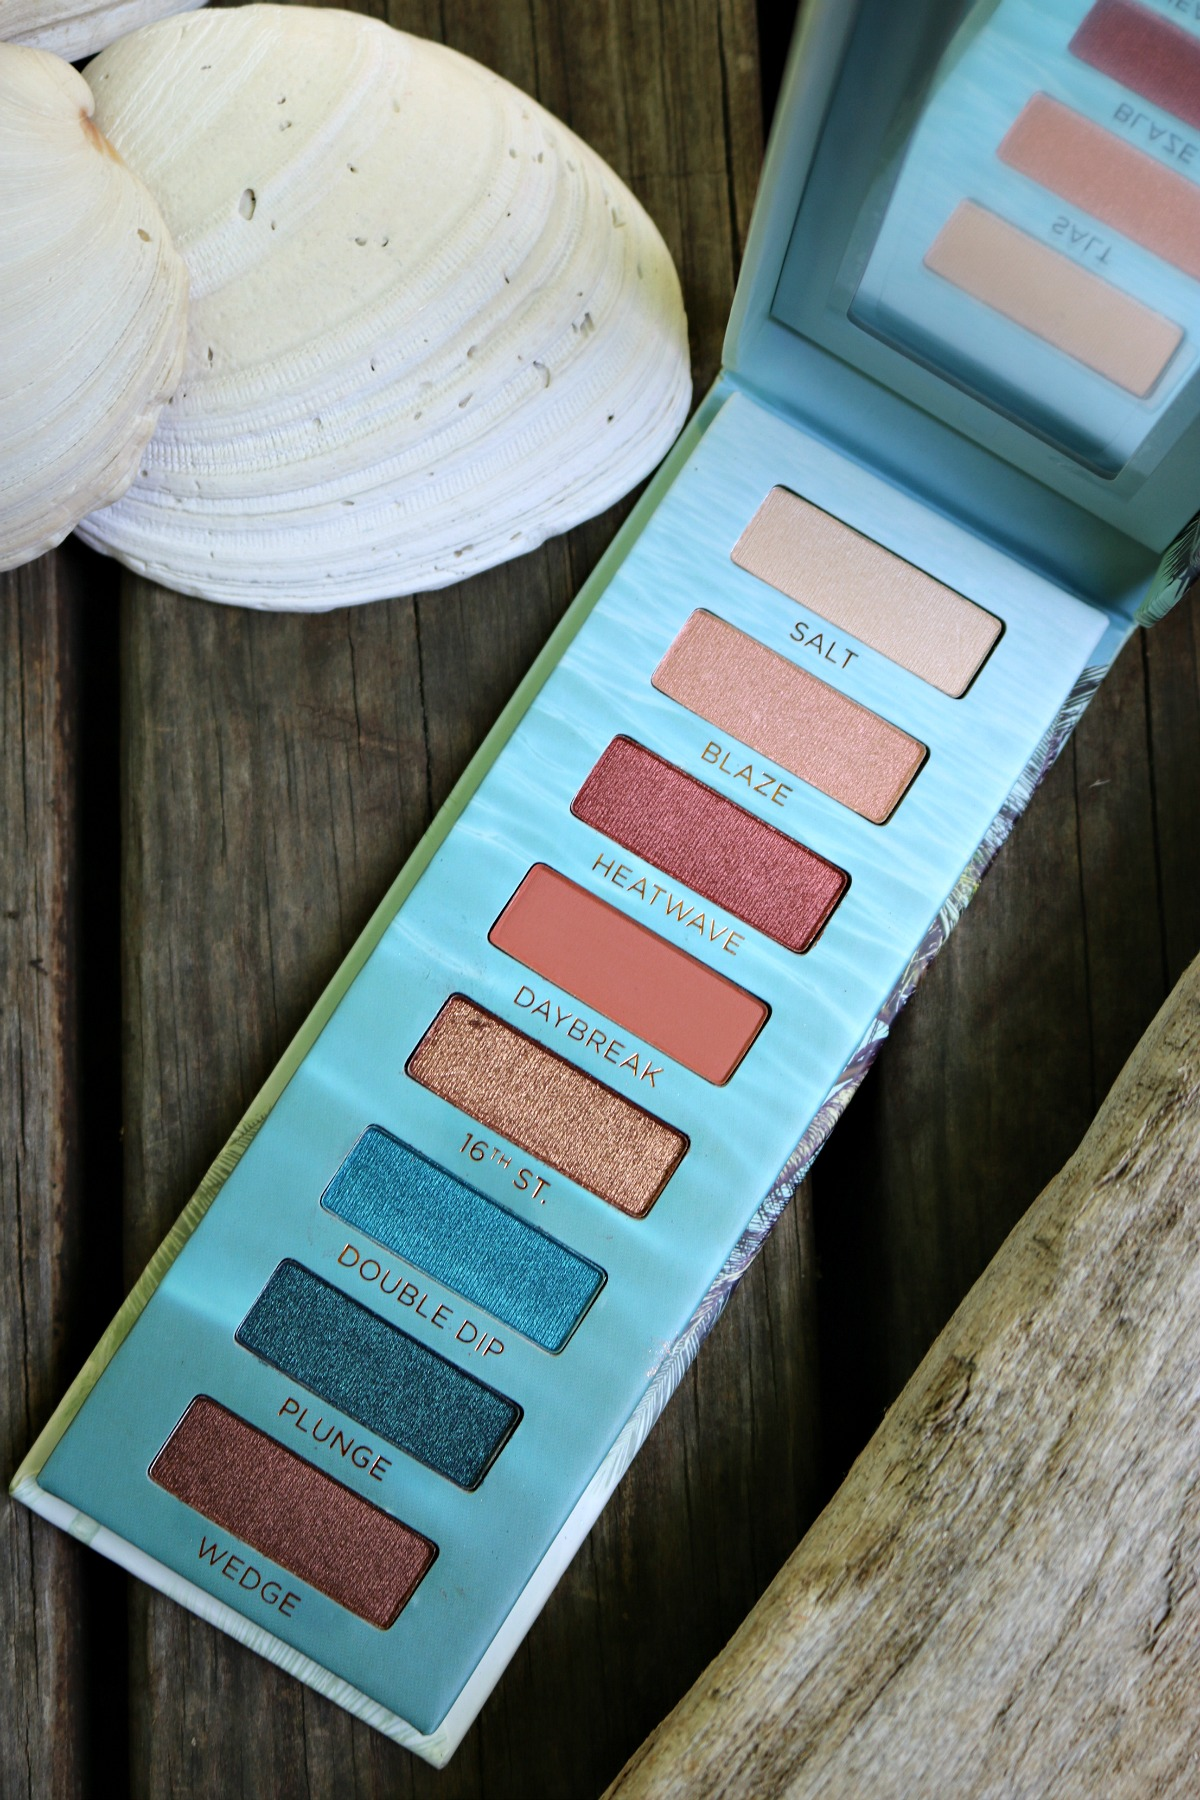 Most Popular Blog Posts of 2018 I Summer 2018 Urban Decay Beached Eyeshadow Palette #SummerMakeup #CrueltyFreeBeauty #CrueltyFree #UrbanDecay